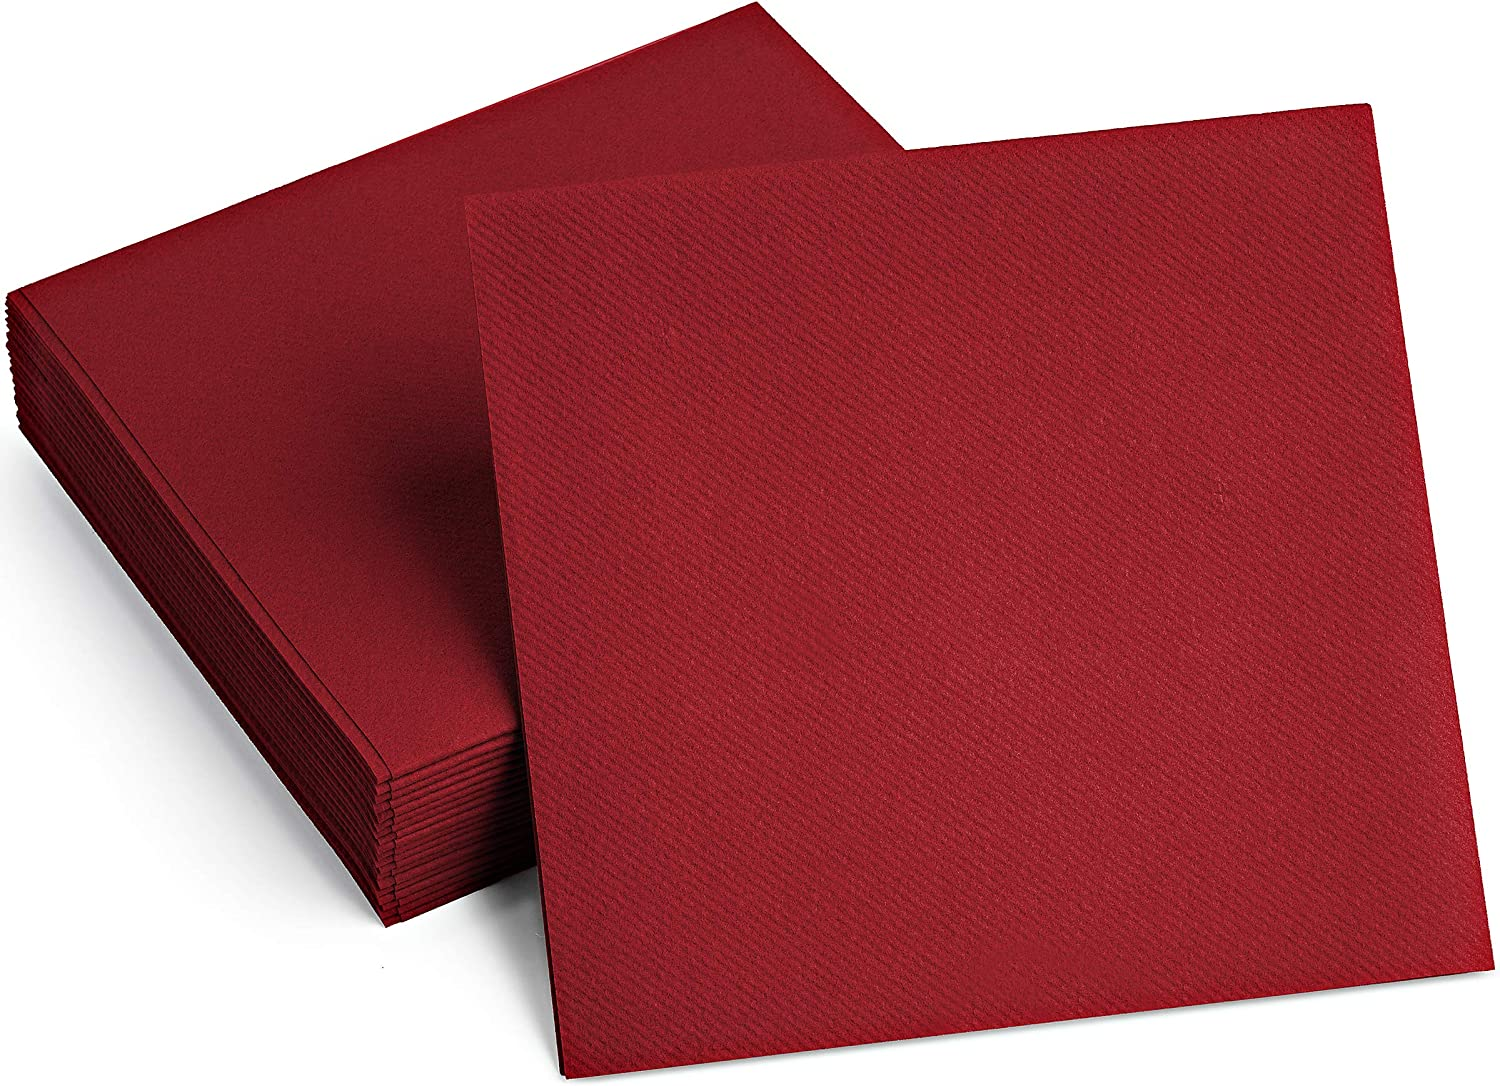 100 Linen-Feel Colored Paper Napkins - Decorative Cloth-Like BURGUNDY Luncheon Napkins - Soft And Absorbent. For Kitchen, Party, Wedding, Dinner Or Any Occasion. (Pack of 100)